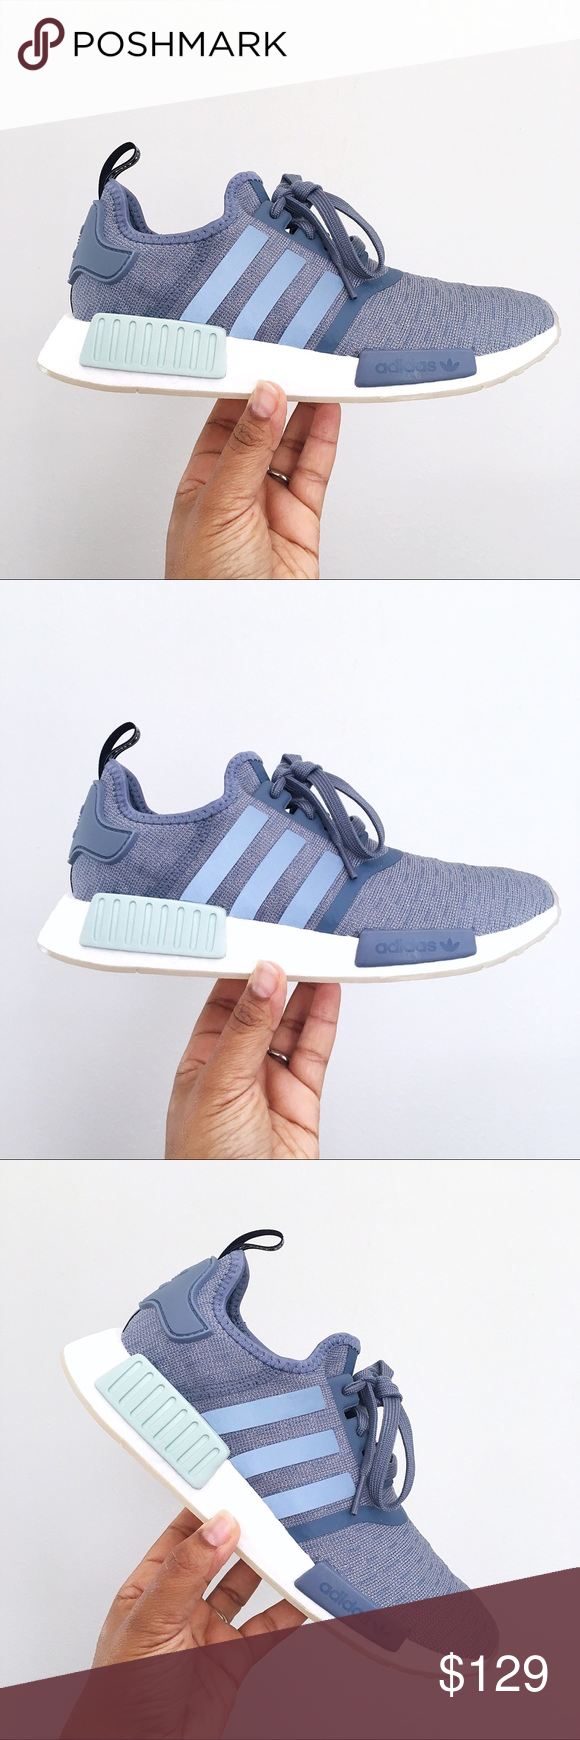 2729aea40736f Adidas NMD R1 Blue Raw Steel   Cloud White Women Brand New in Box with Lid  🙌🏽 - Beautiful and extremely comfortable Steel Cloud White Blue Adidas  NMD R2 ...